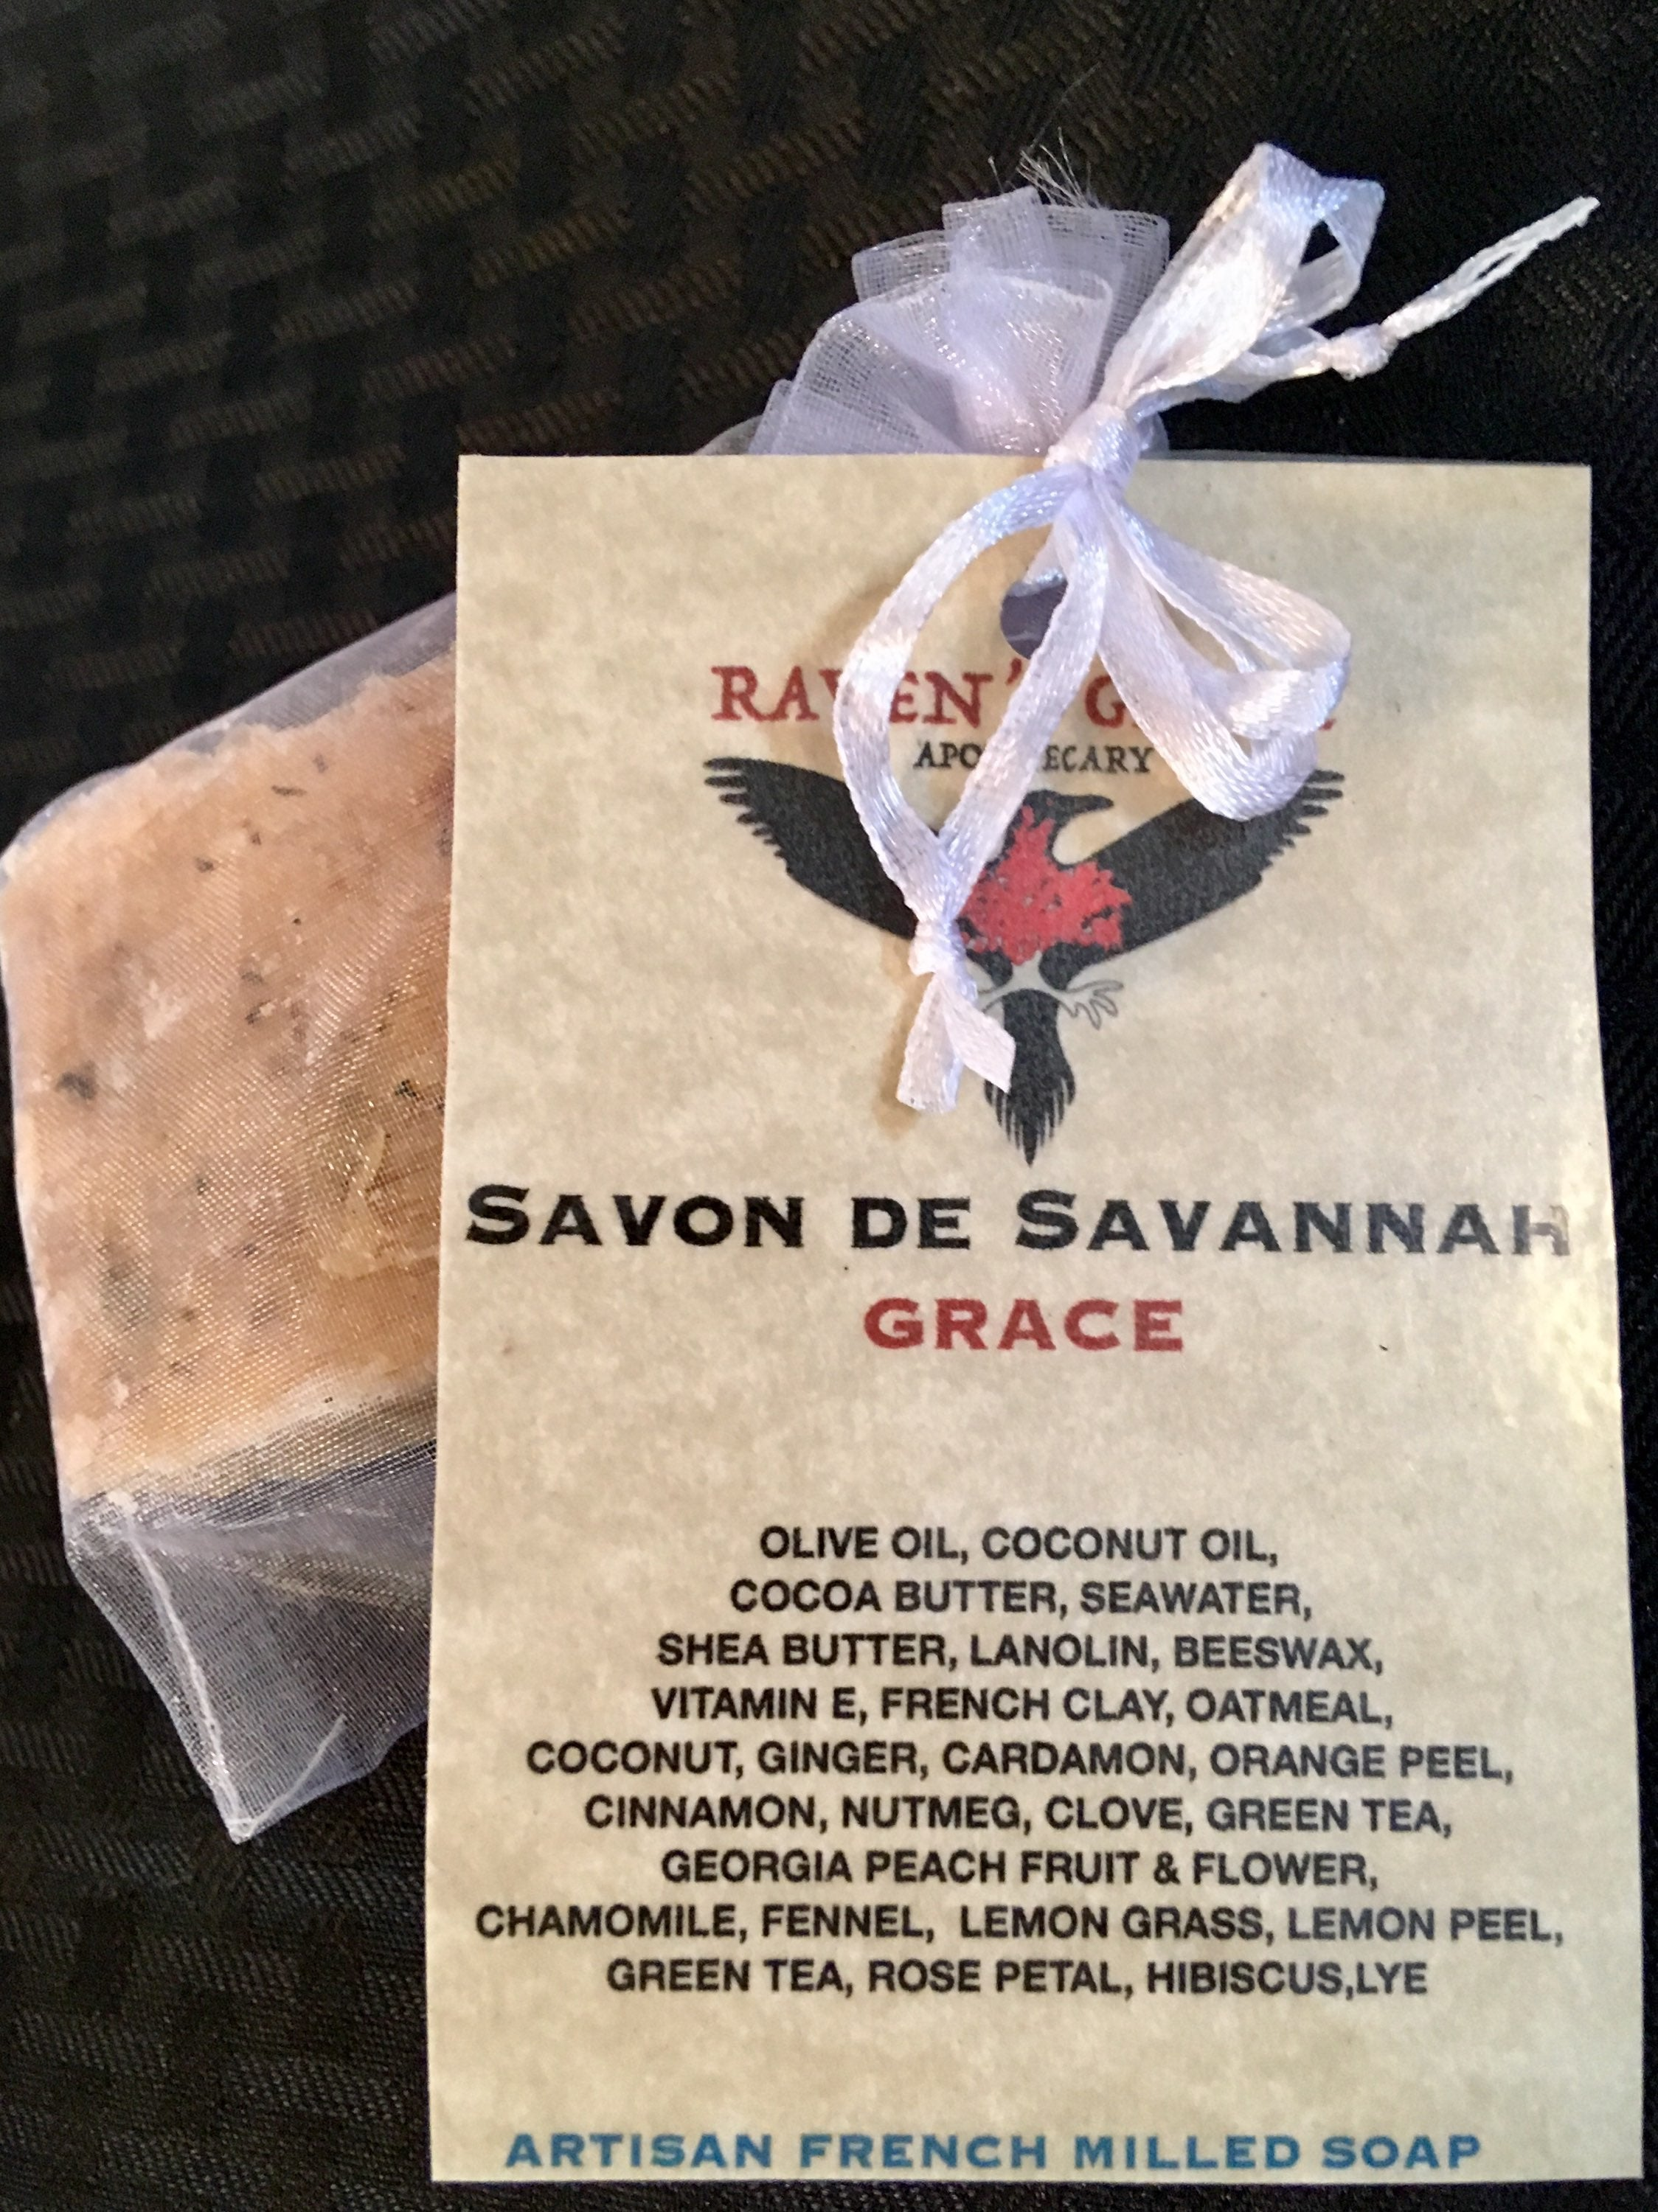 GRACE: ARTISAN FRENCH MILLED SOAP